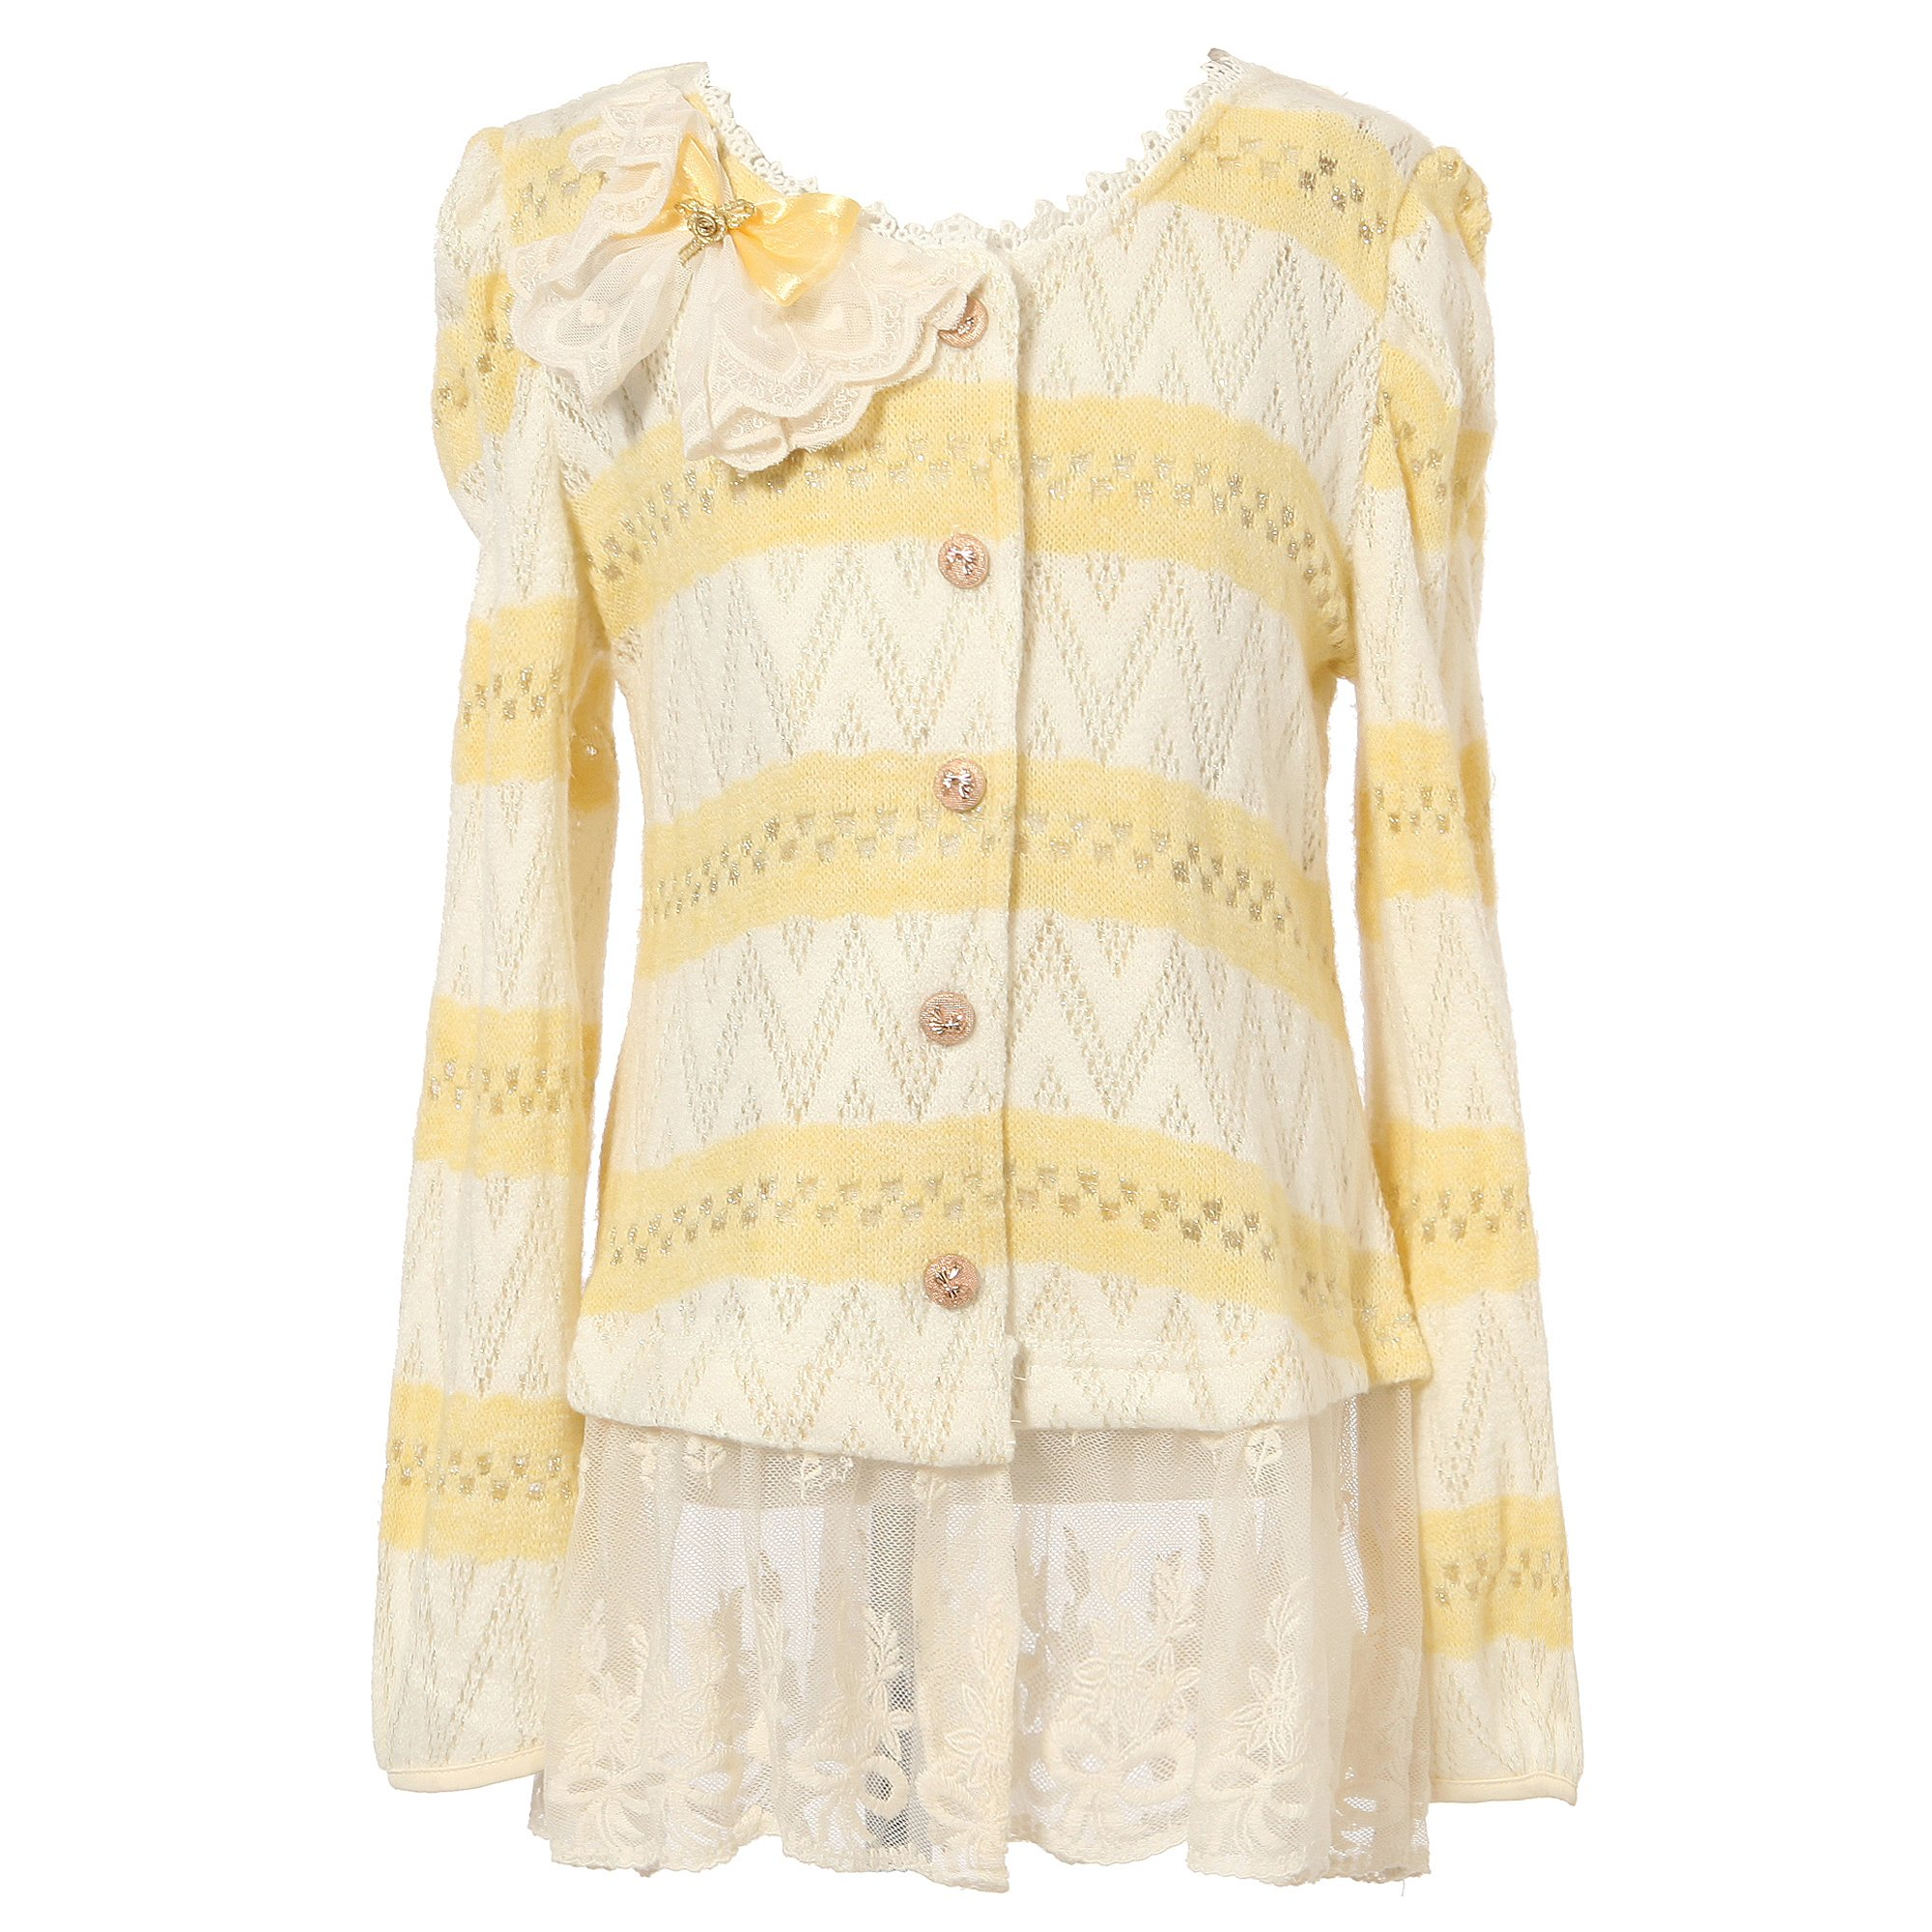 Richie House Little Girls' Cardigan Sweater with Bow Accent RH1270-B-3/4